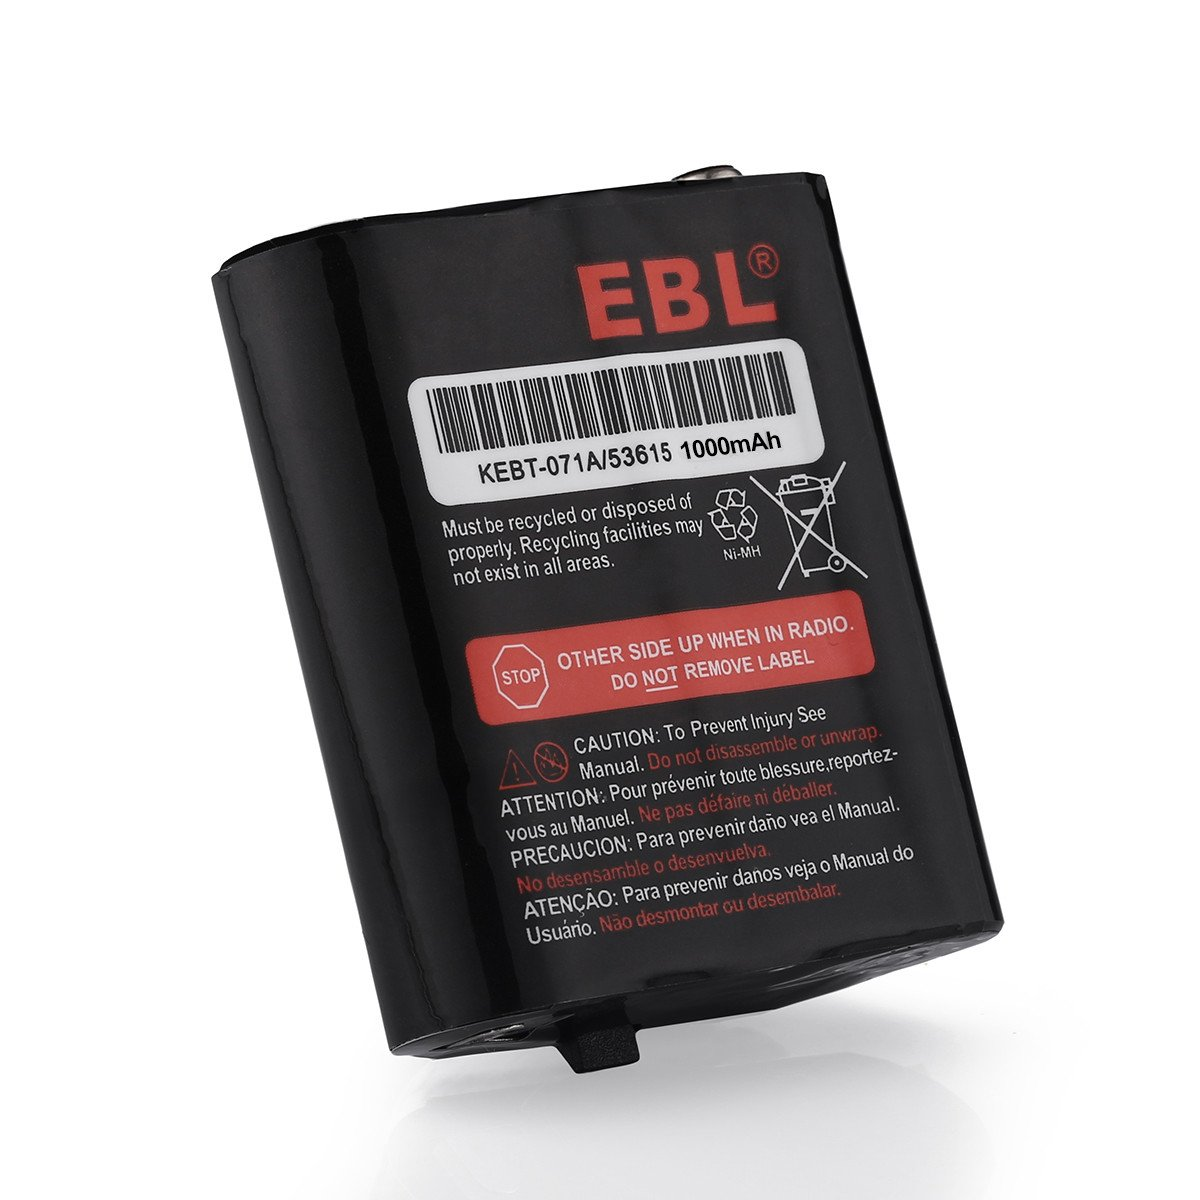 2 Pack EBL 3.6V 1000mAh Two-Way Radio Rechargeable Battery for Motorola 53615 m53615 KEBT-071-A KEBT-071-B KEBT-071-C KEBT-071-D Talkabout 5950 T4800 T4900 T5000 T5800 T9500R